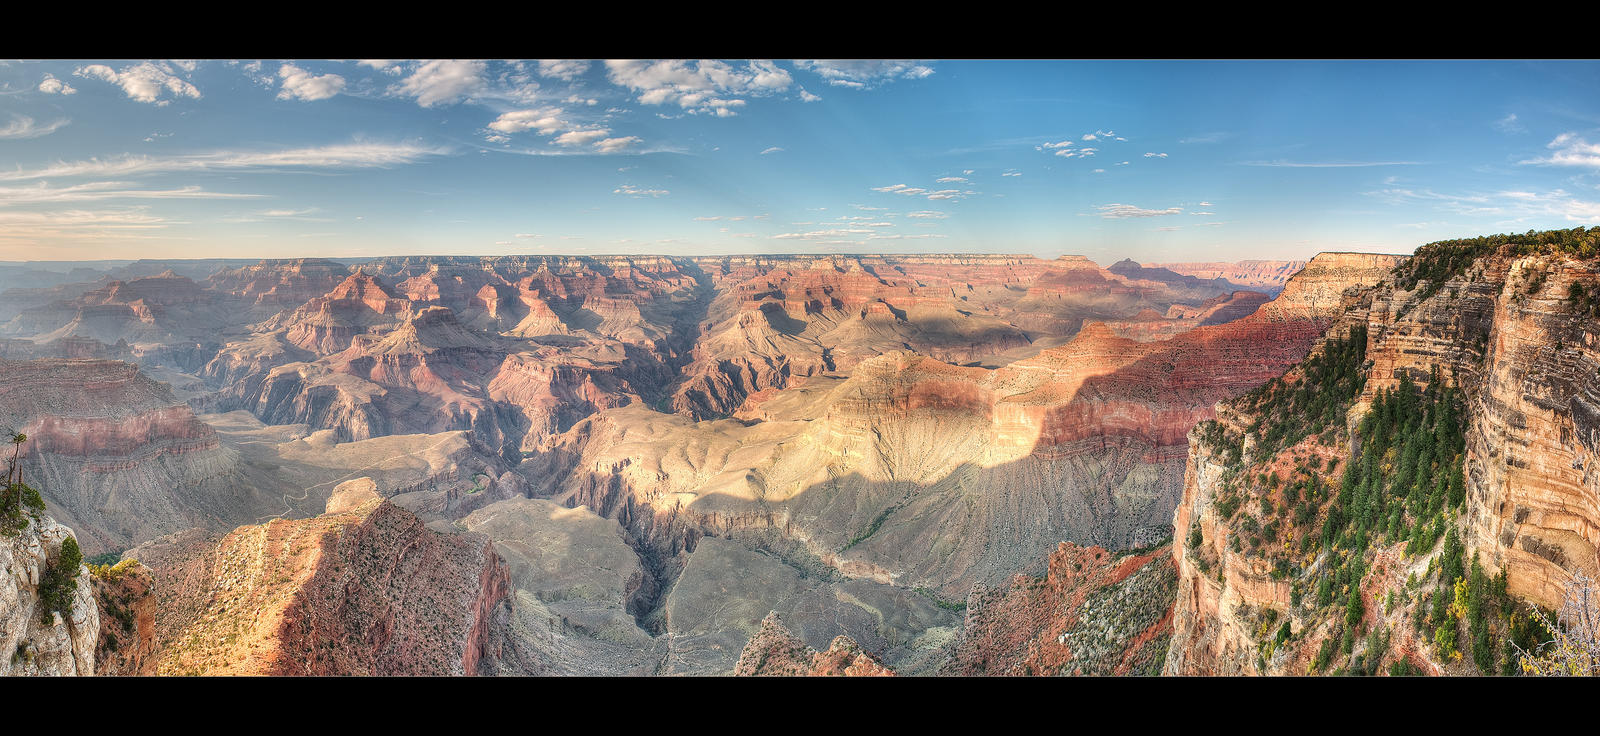 Grand Canyon cinematic view pt. II by myINQI